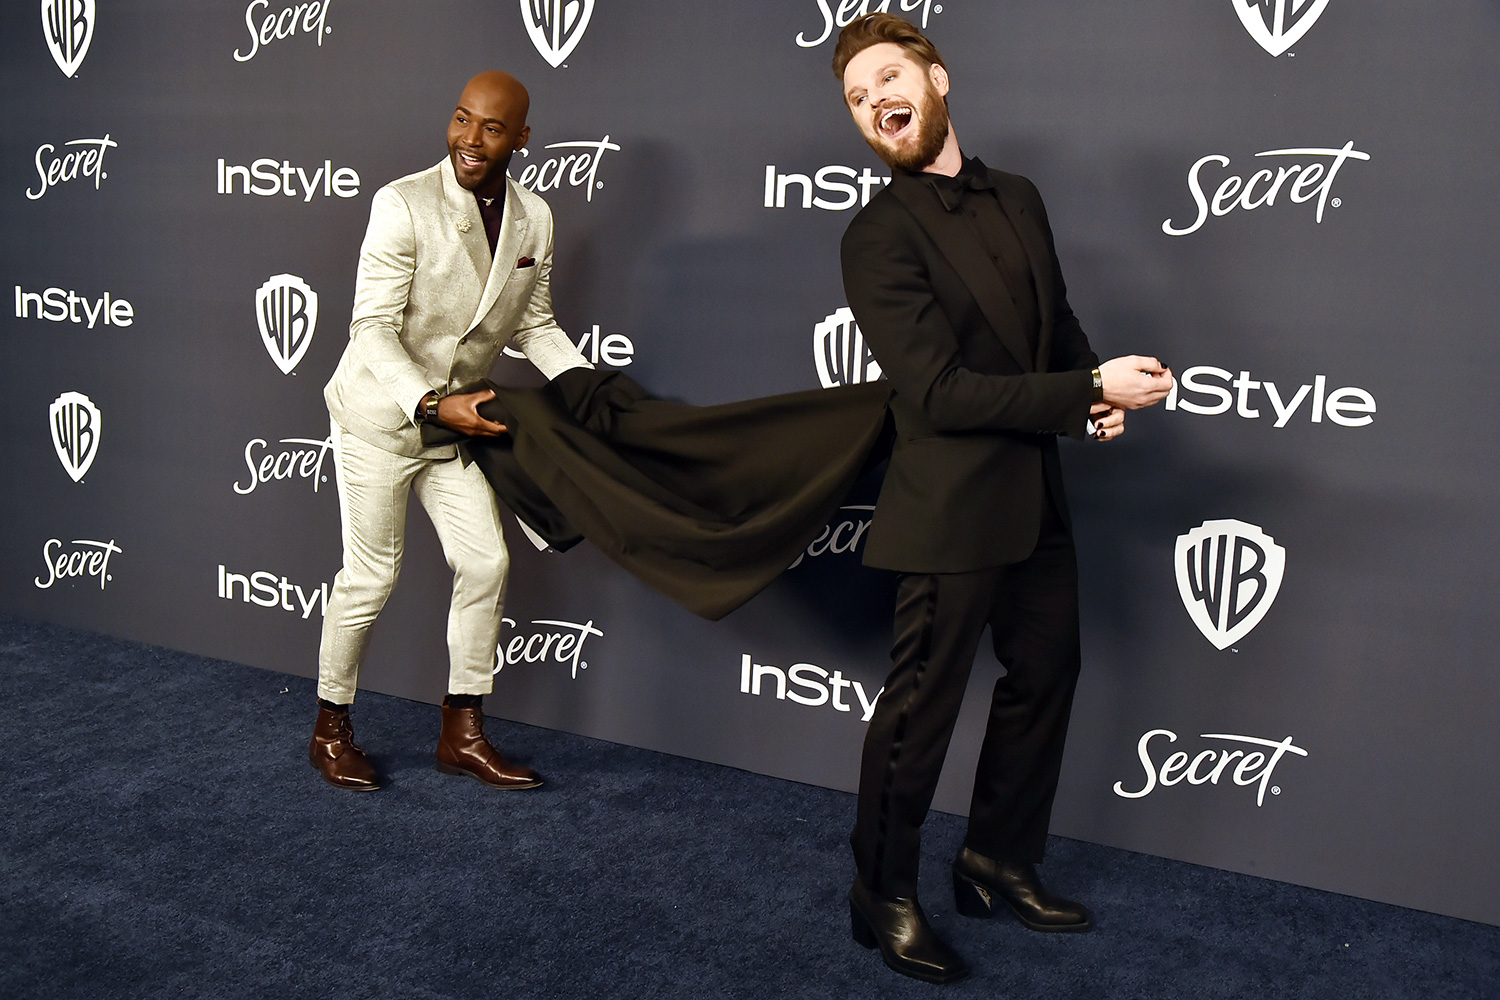 Bobby Berk and Karamo Brown attend the Warner Brothers and InStyle 21st Annual Post Golden Globes After Party Sponsored By L'Oreal Paris & Secret at Beverly Hills Hotel on January 05, 2020 in Beverly Hills